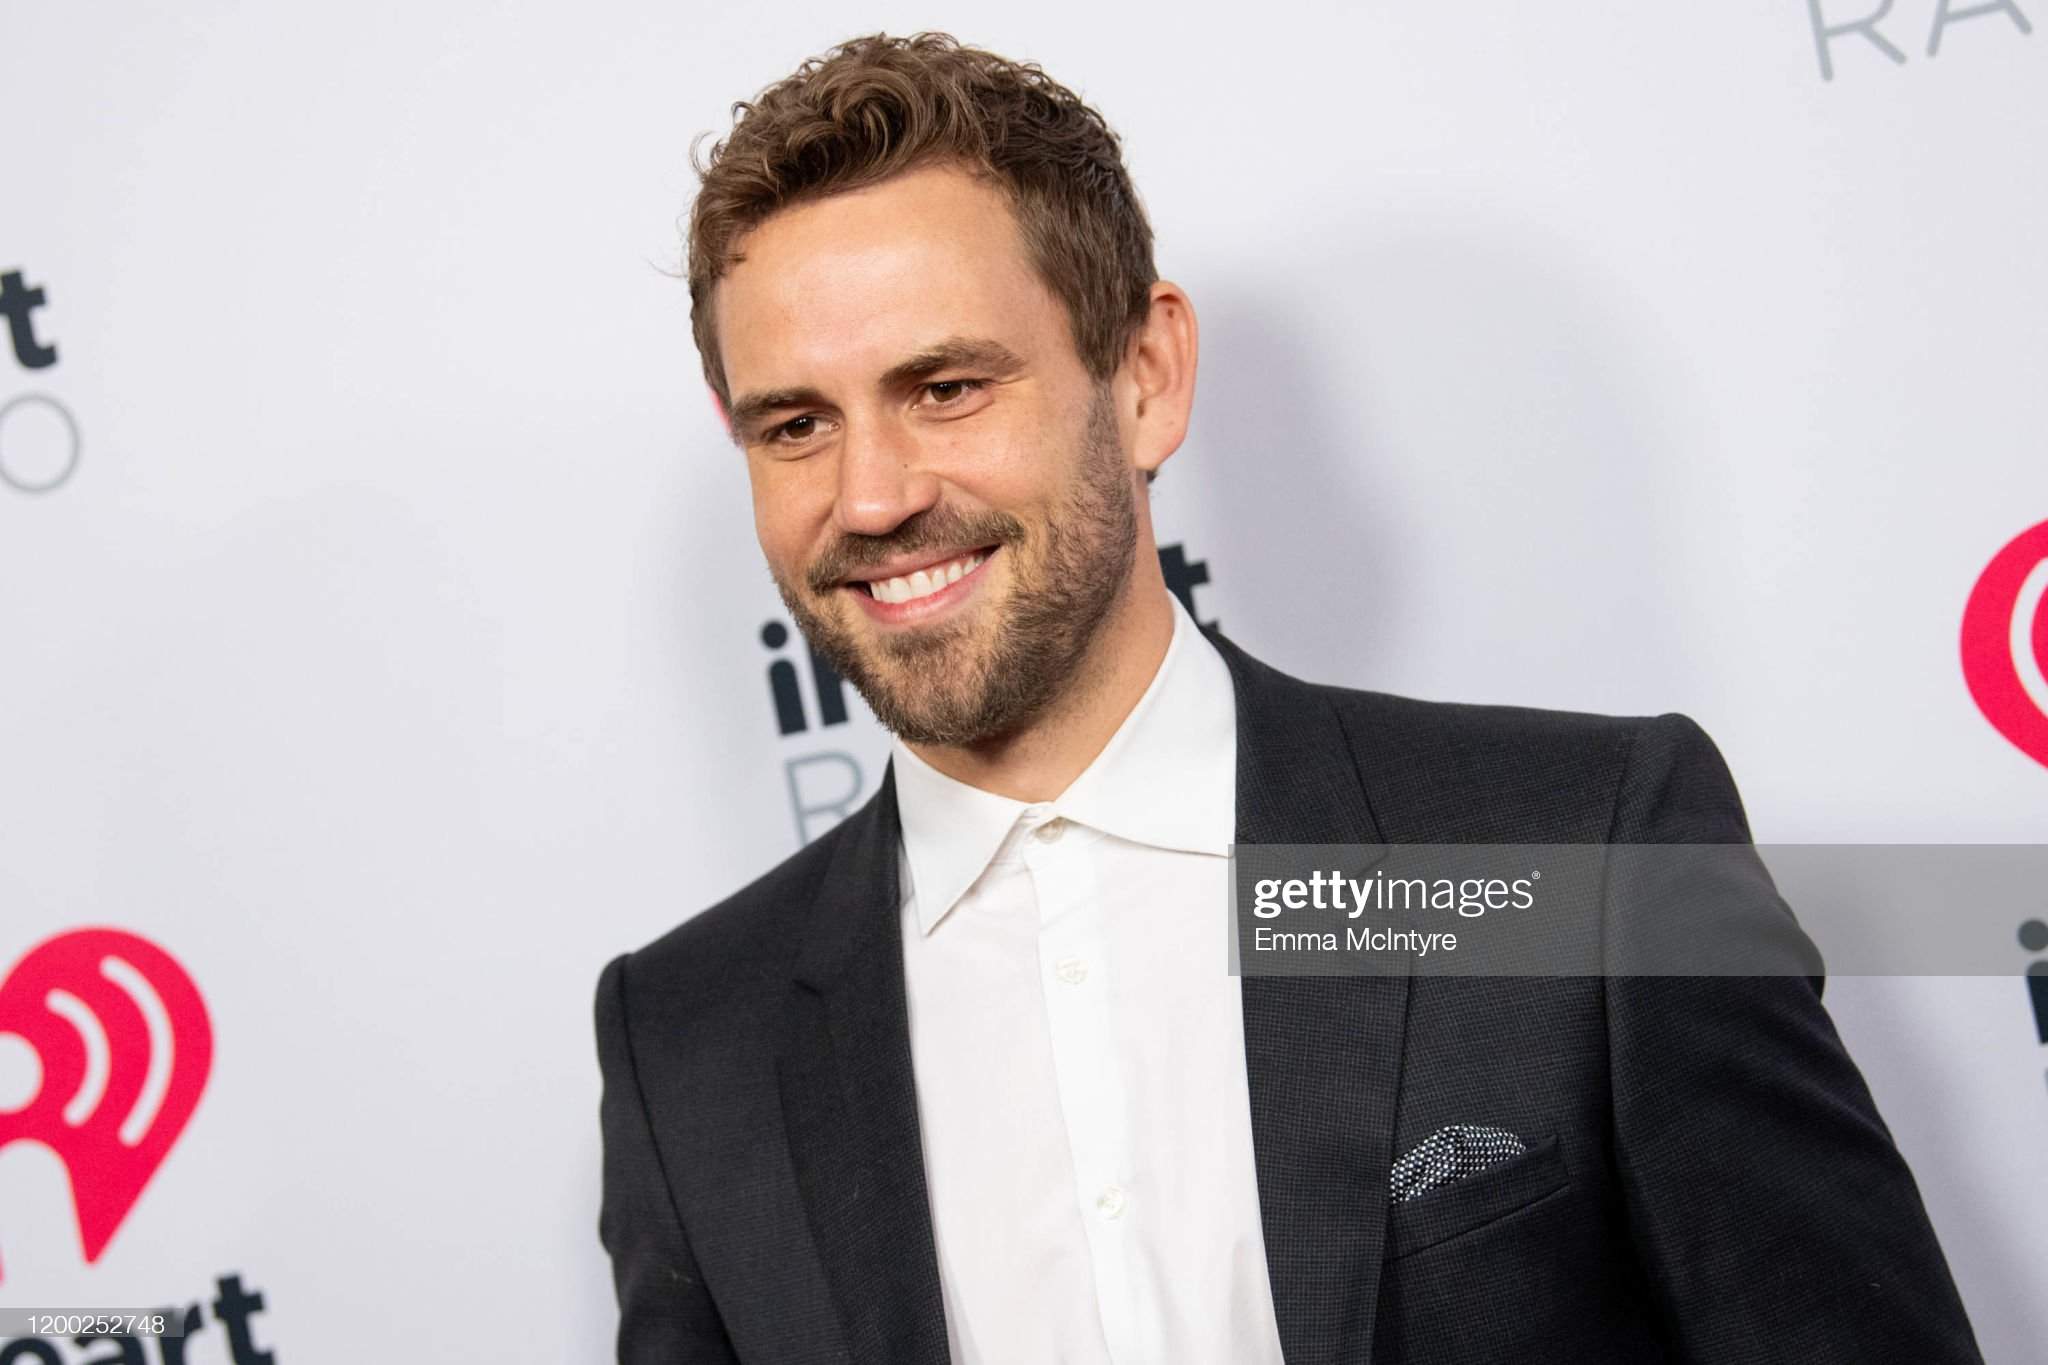 Nick Viall - Bachelor 21 - FAN Forum - Discussion #27 - Page 69 Nick-viall-arrives-at-the-2020-iheartradio-podcast-awards-at-theater-picture-id1200252748?s=2048x2048